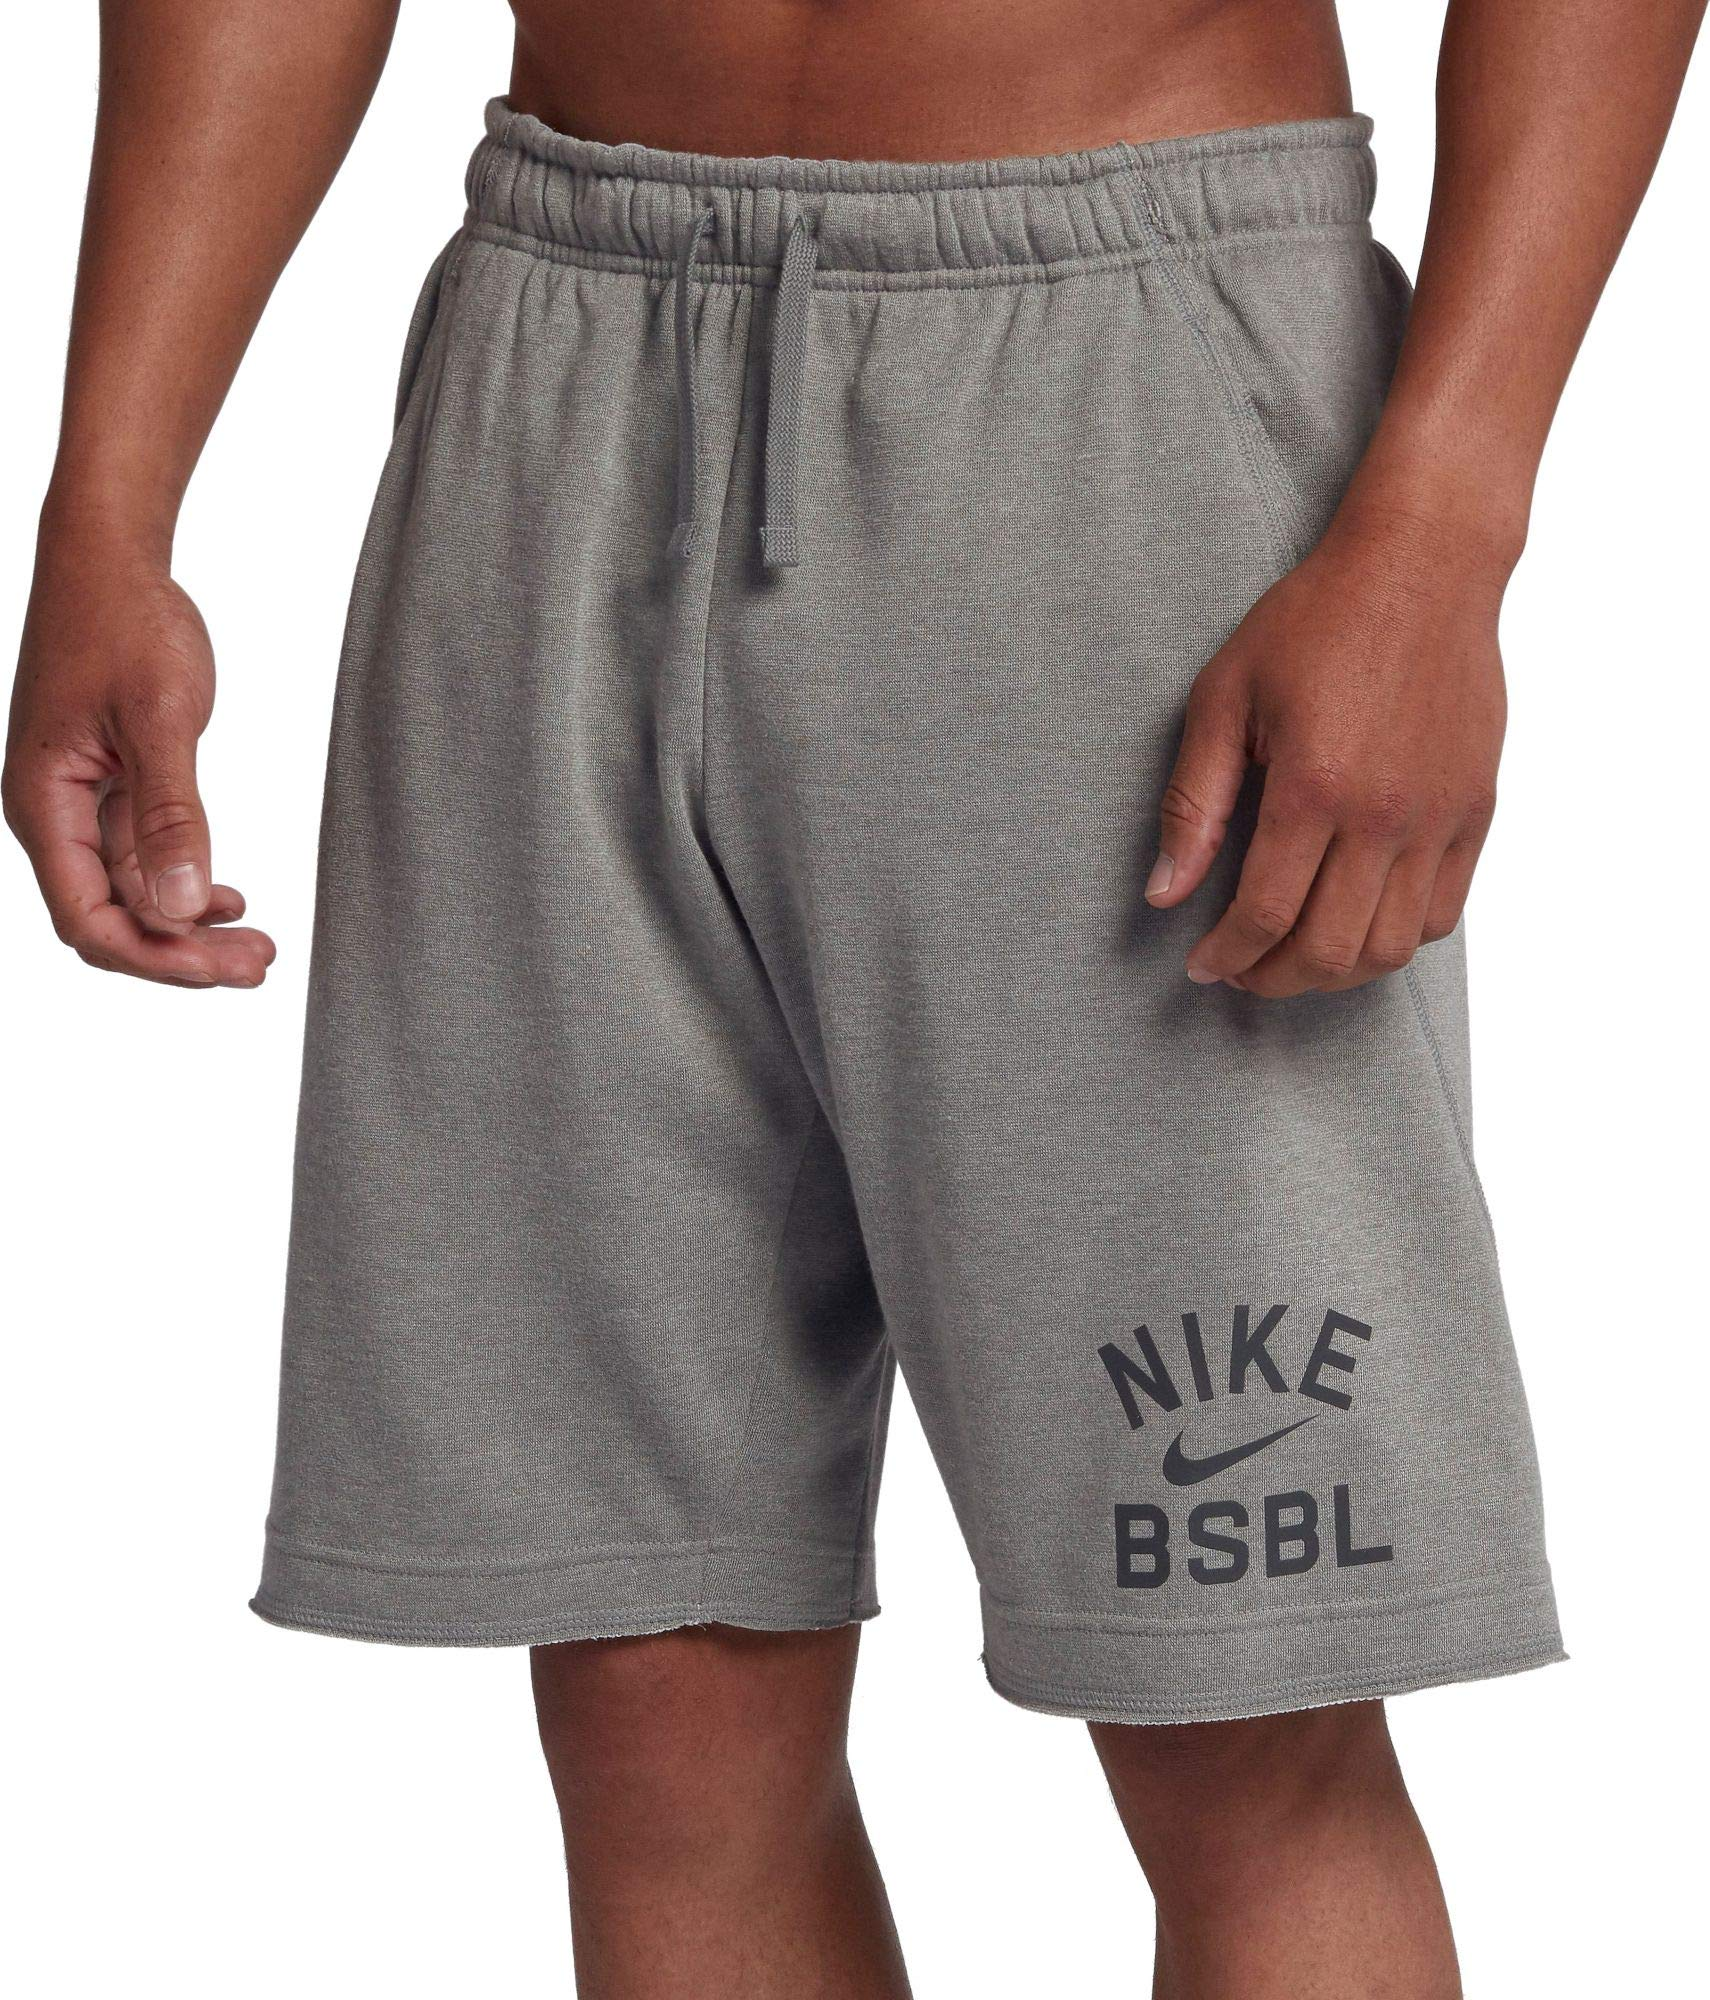 Nike Men's Flux Baseball Shorts (Dk Grey Heather, Large) by Nike